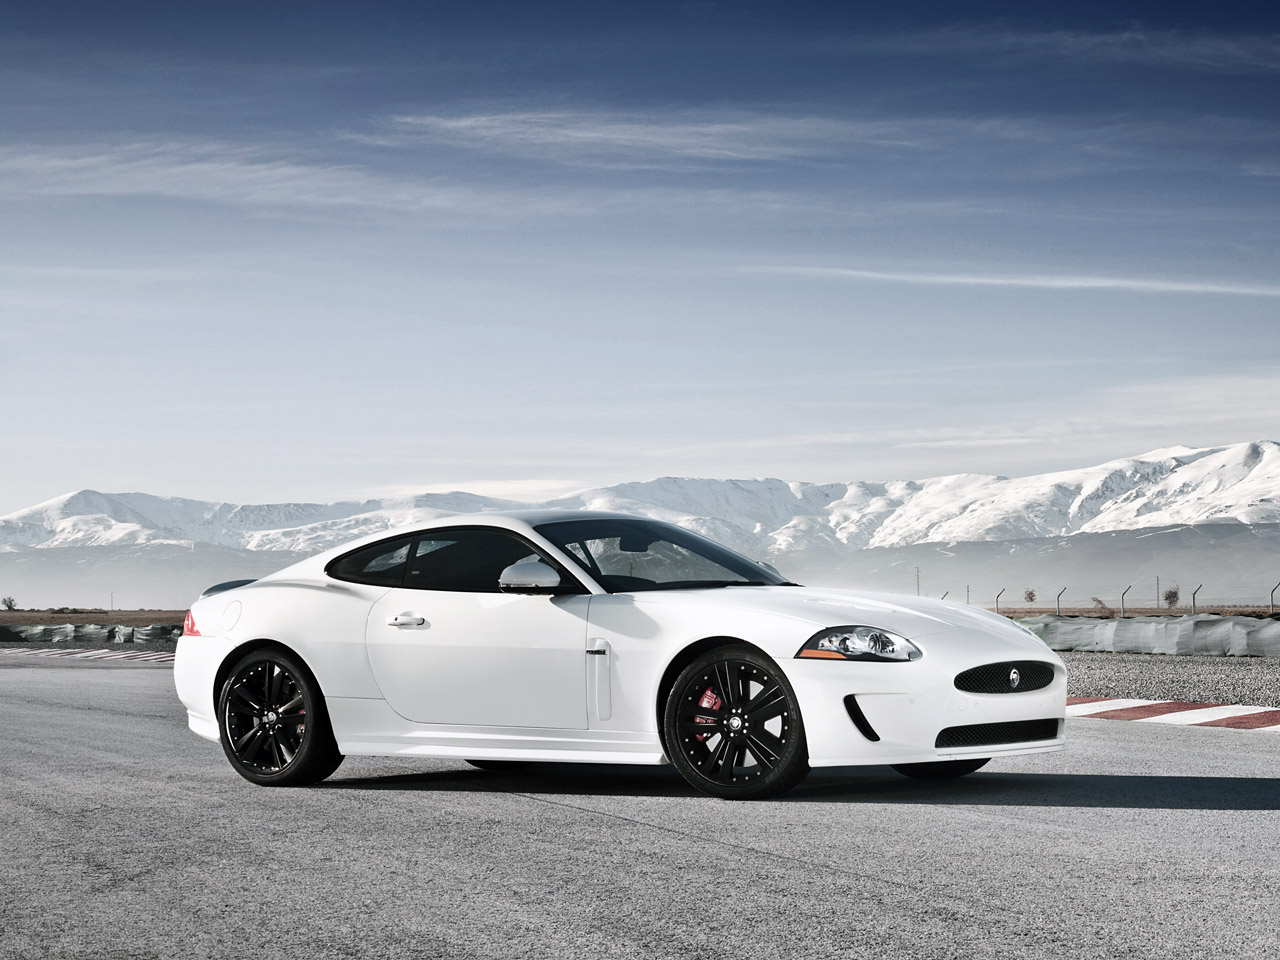 http://1.bp.blogspot.com/_SpSBliI2Ye8/S7jDzWqV64I/AAAAAAAABMA/aukVpqY2BYc/s1600/2011+Jaguar+XKR+V8+Special+Edition+3.jpg